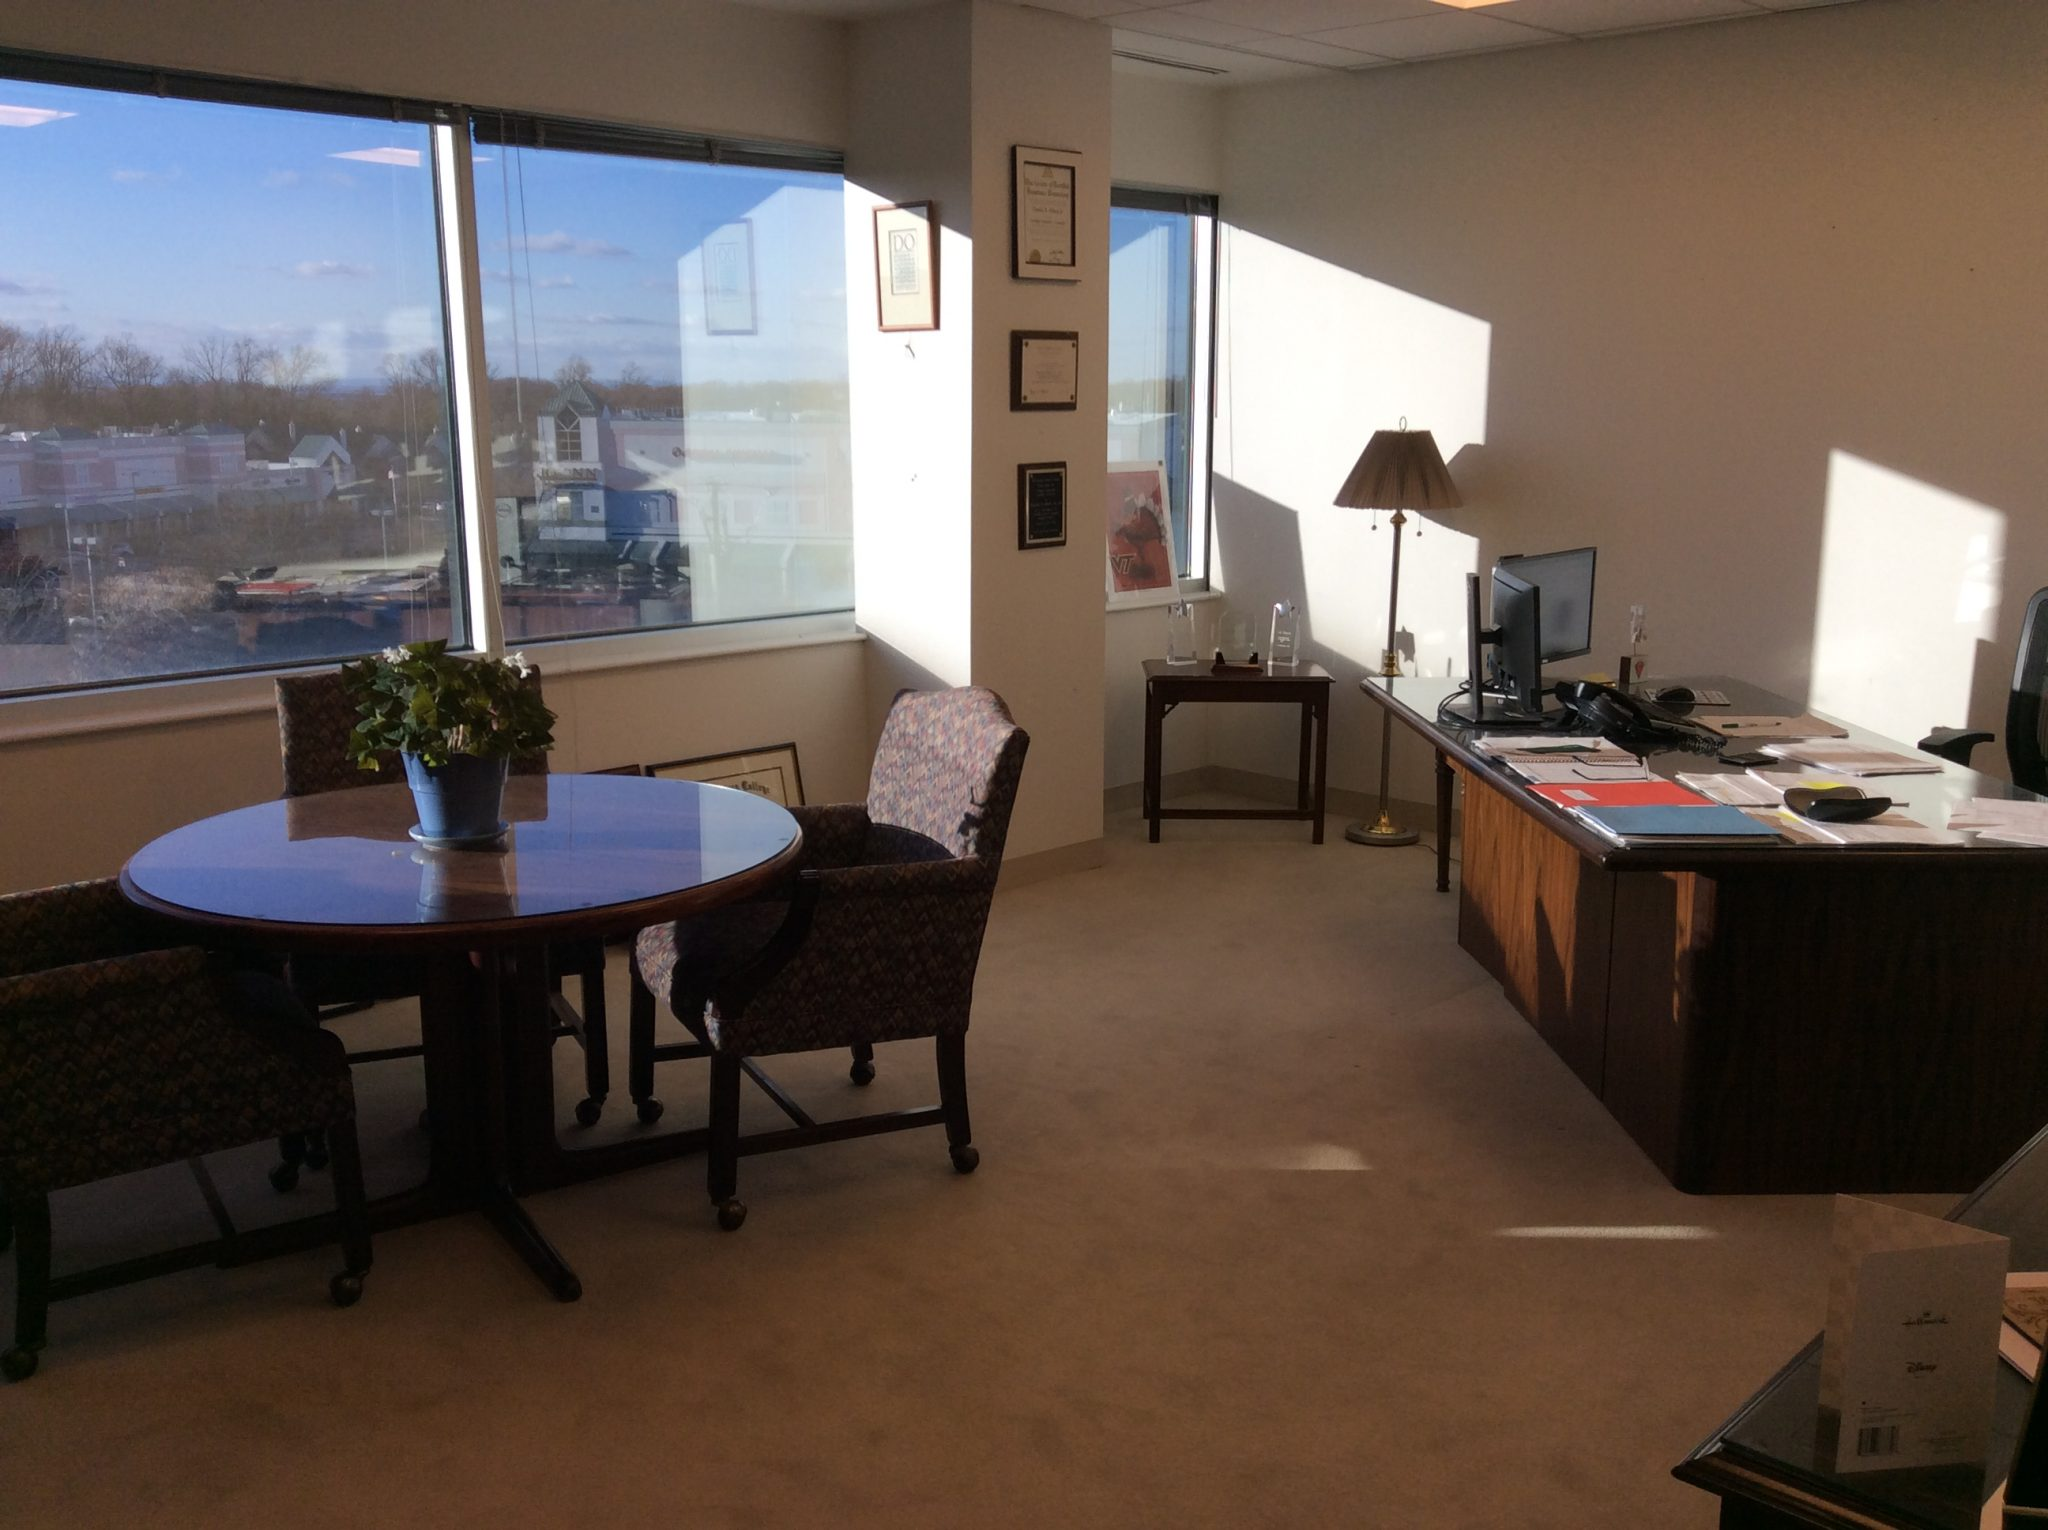 Fairfax, VA Insurance Agency Interior, Single Office Overlooking Fairfax  Streets.